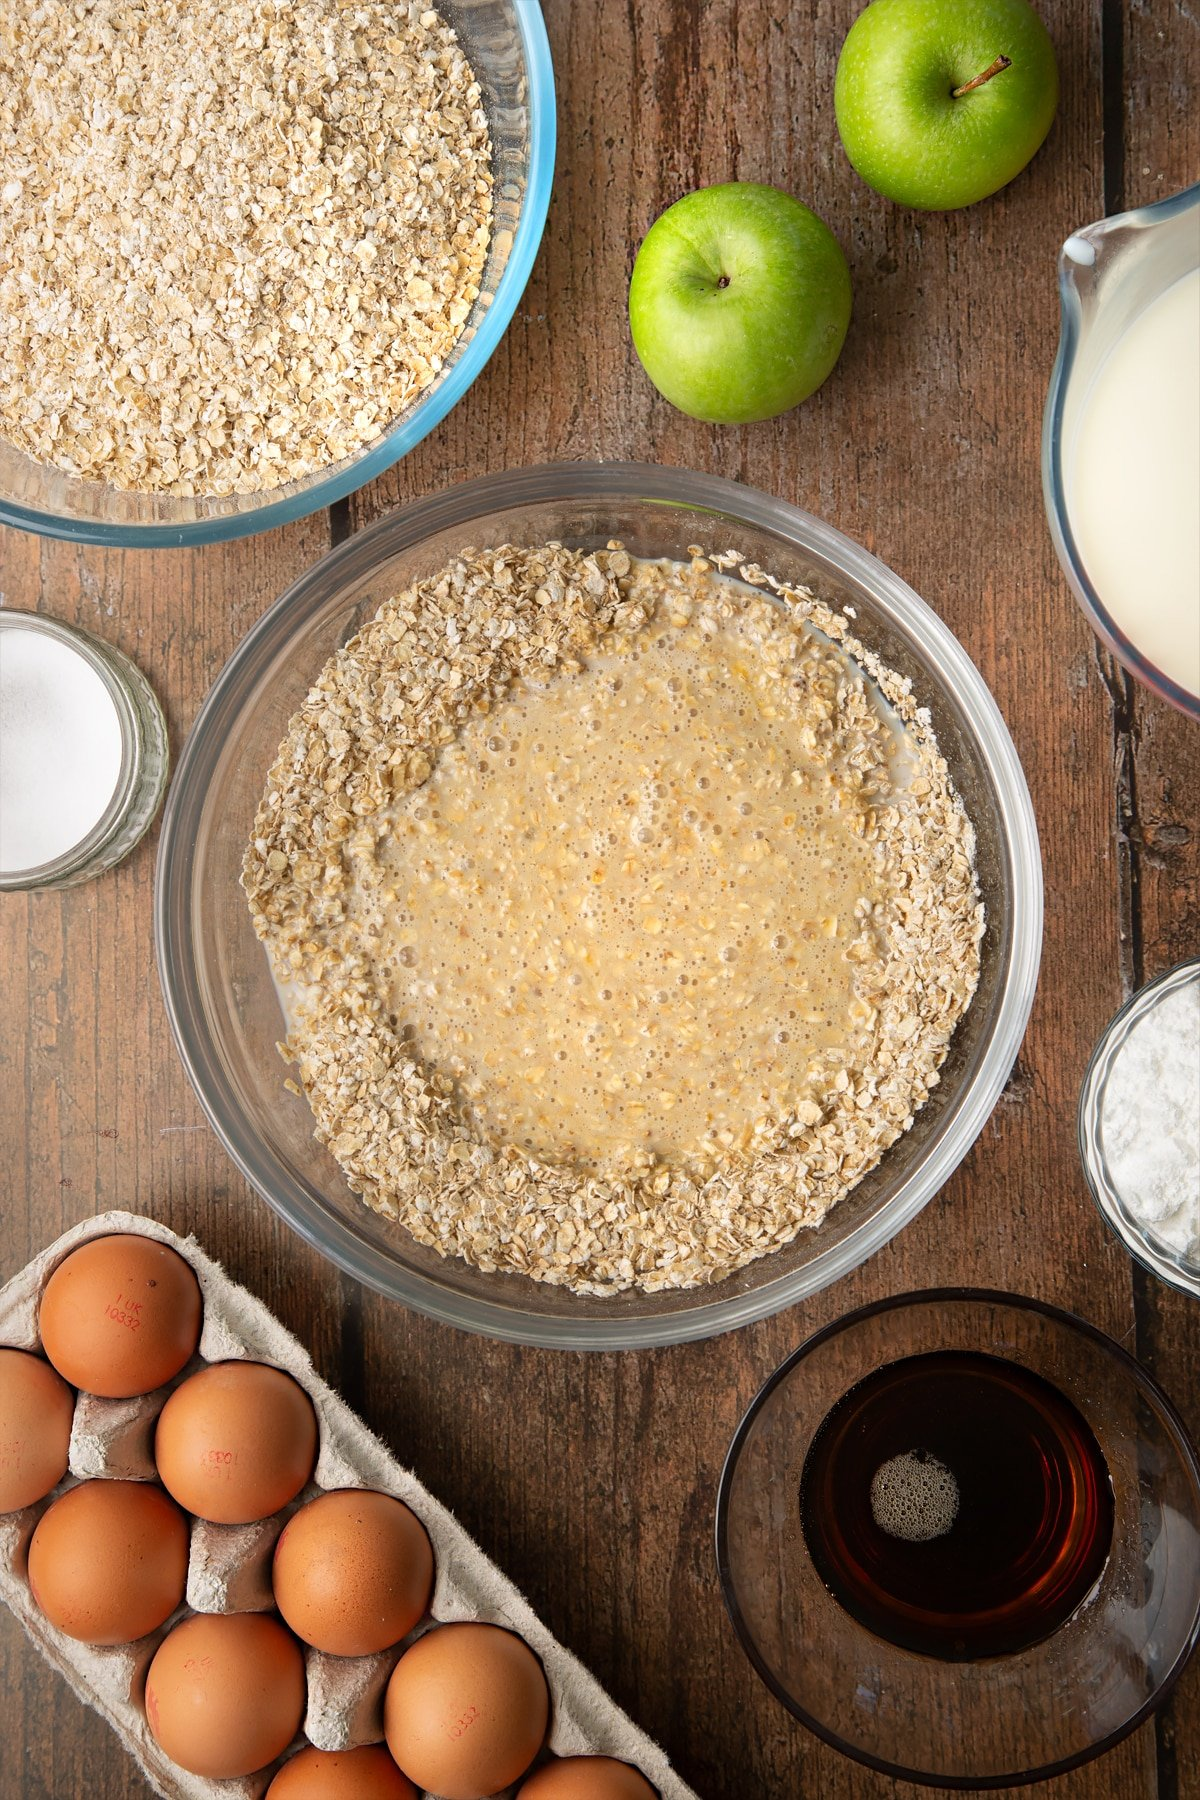 Oats, baking powder, salt, milk, eggs and maple syrup, semi mixed in a glass mixing bowl. Ingredients to make porridge squares surround the bowl.